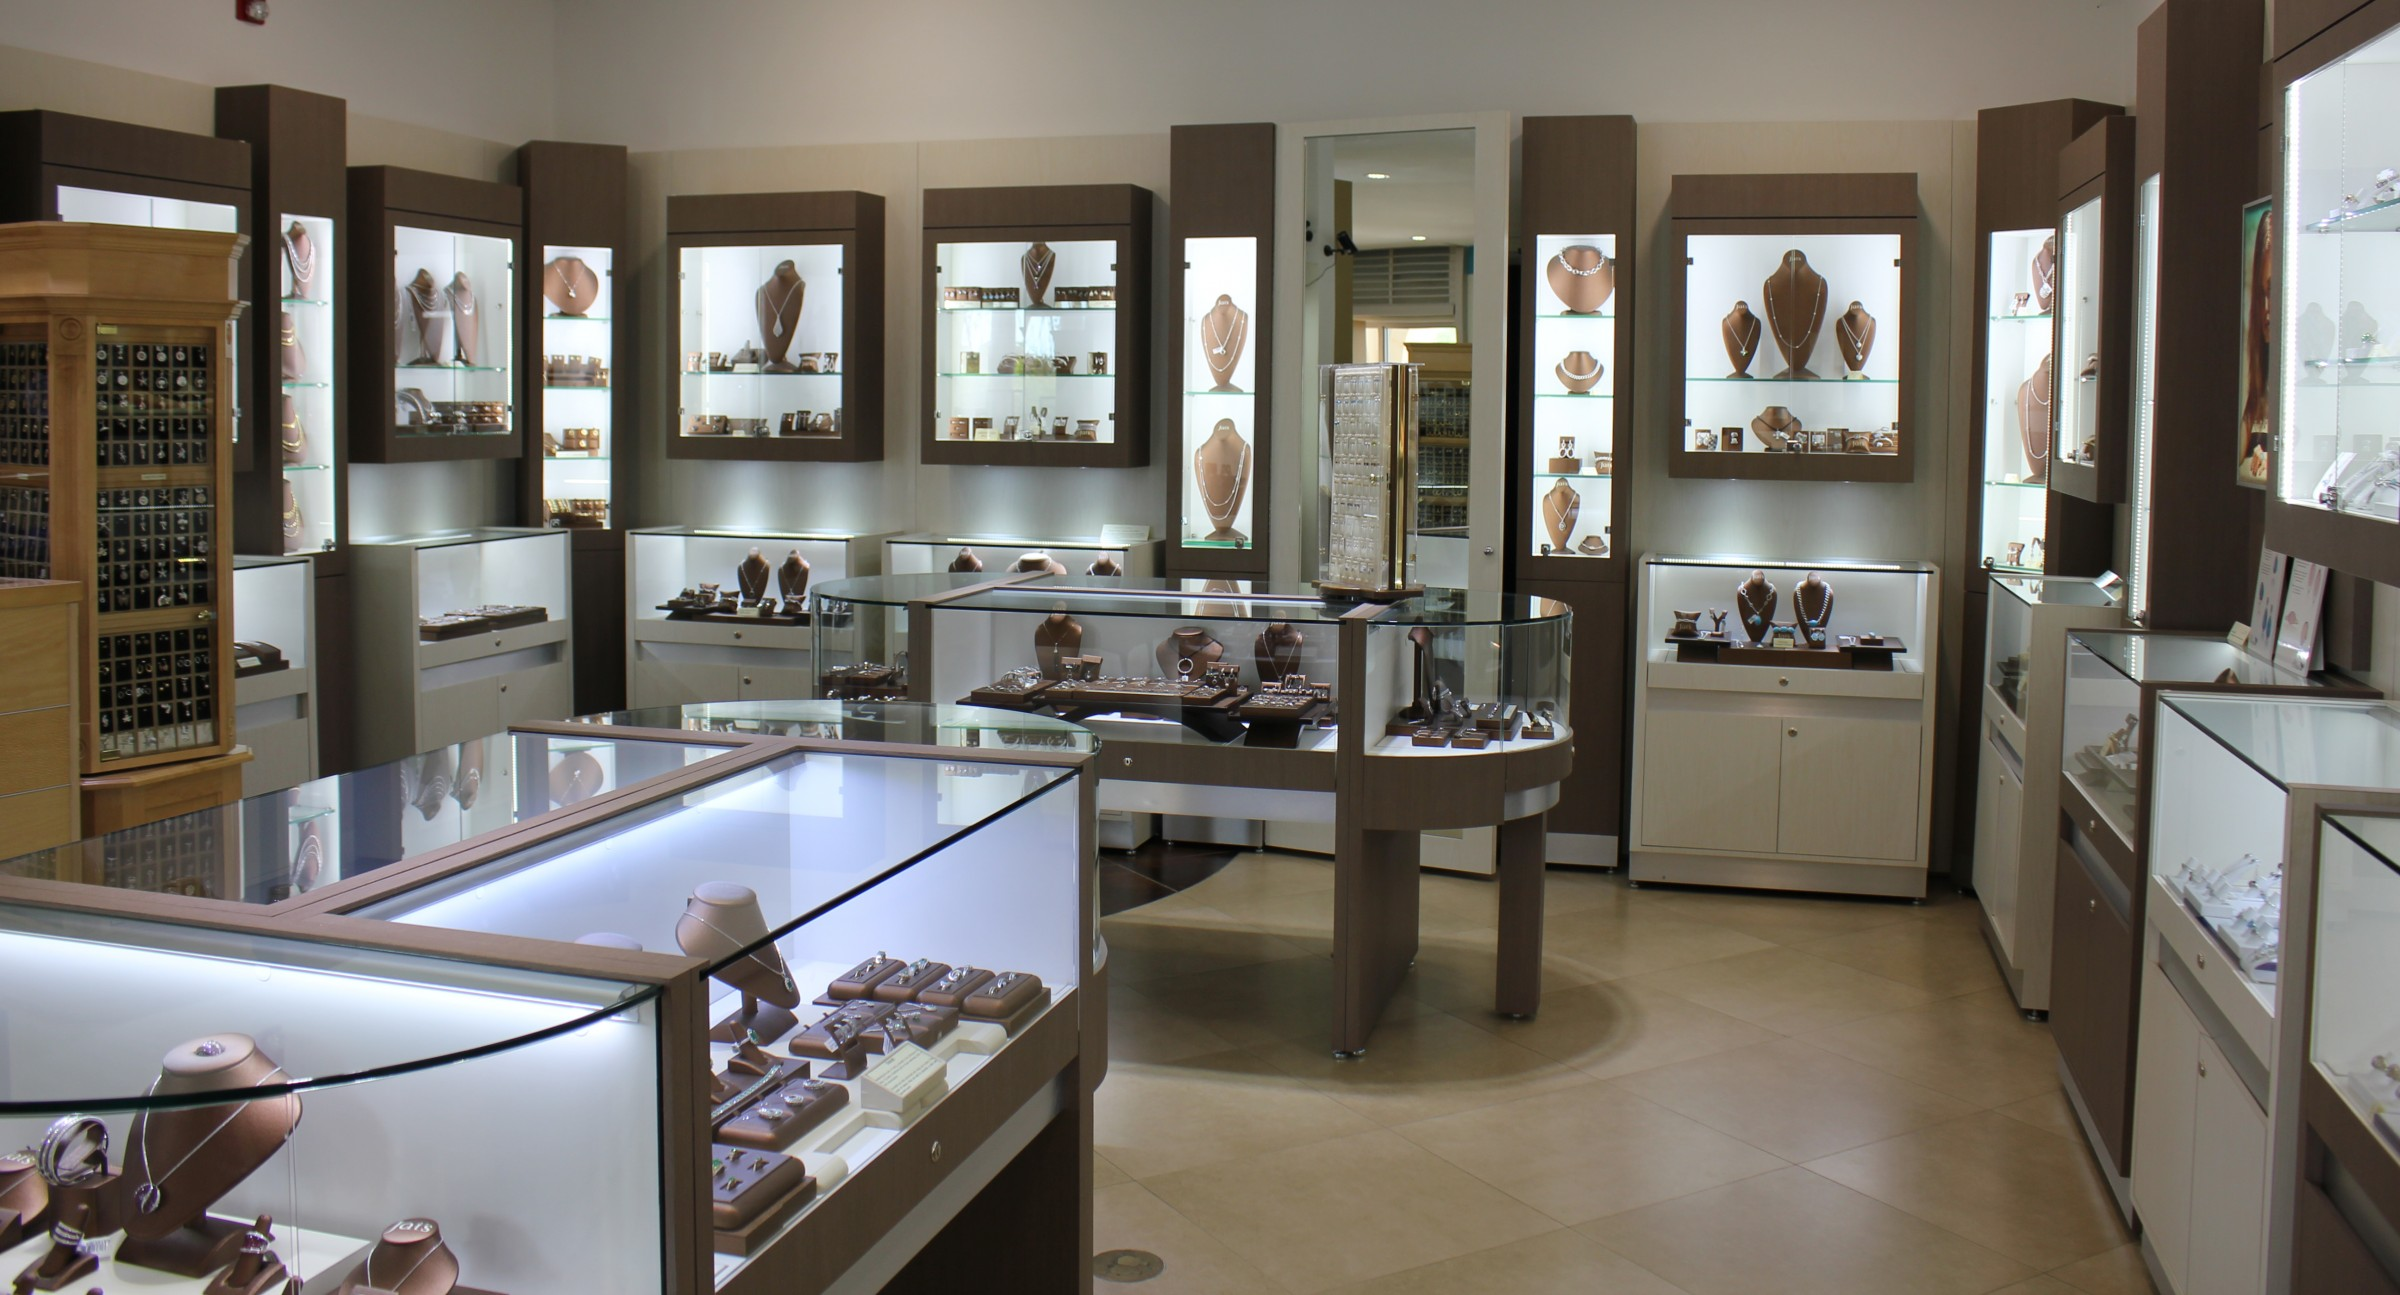 Interior setting with glass display and wall glass display - Colored Stone Merchandise.